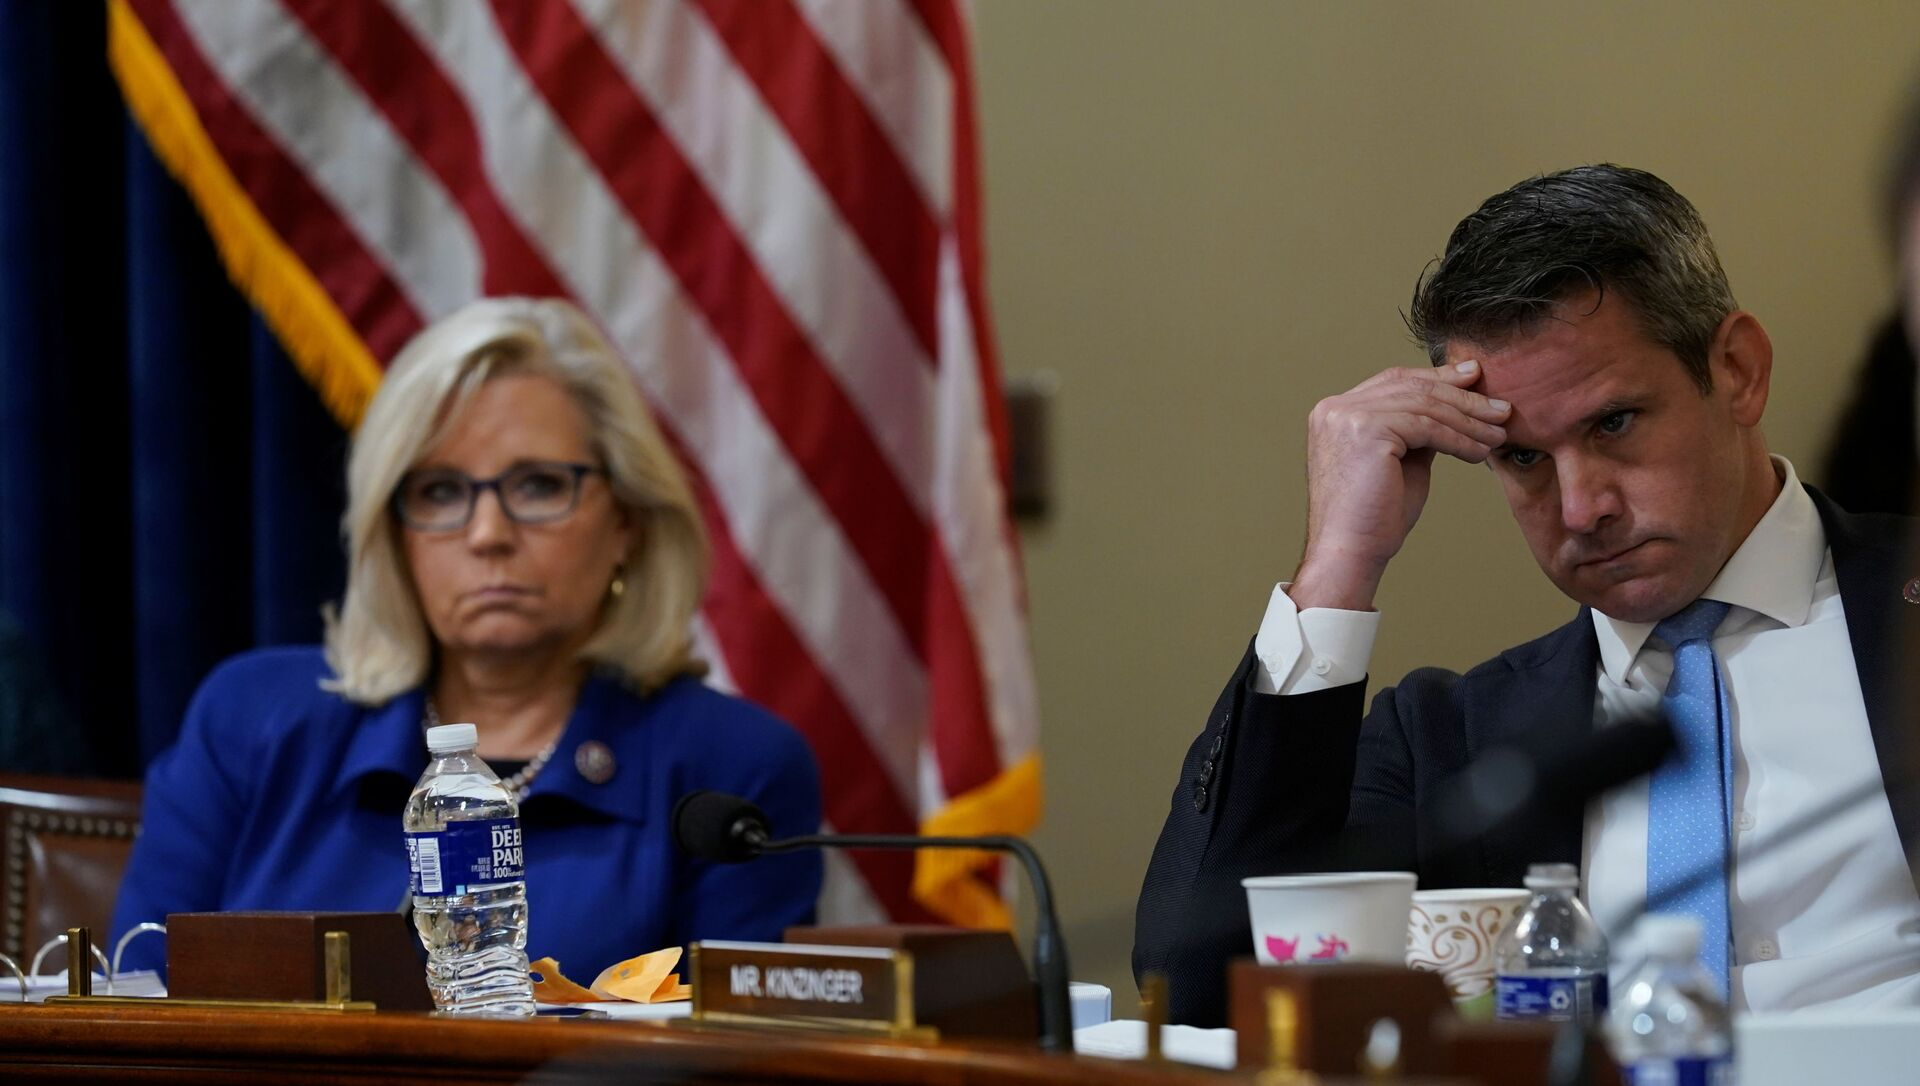 U.S. Rep. Liz Cheney, R-Wyo., and Rep. Adam Kinzinger, R-Ill., listen as Rep. Elaine Luria, D-Va., speaks during the House select committee hearing on the Jan. 6 attack on Capitol Hill in Washington, U.S., July 27, 2021 - Sputnik International, 1920, 28.07.2021